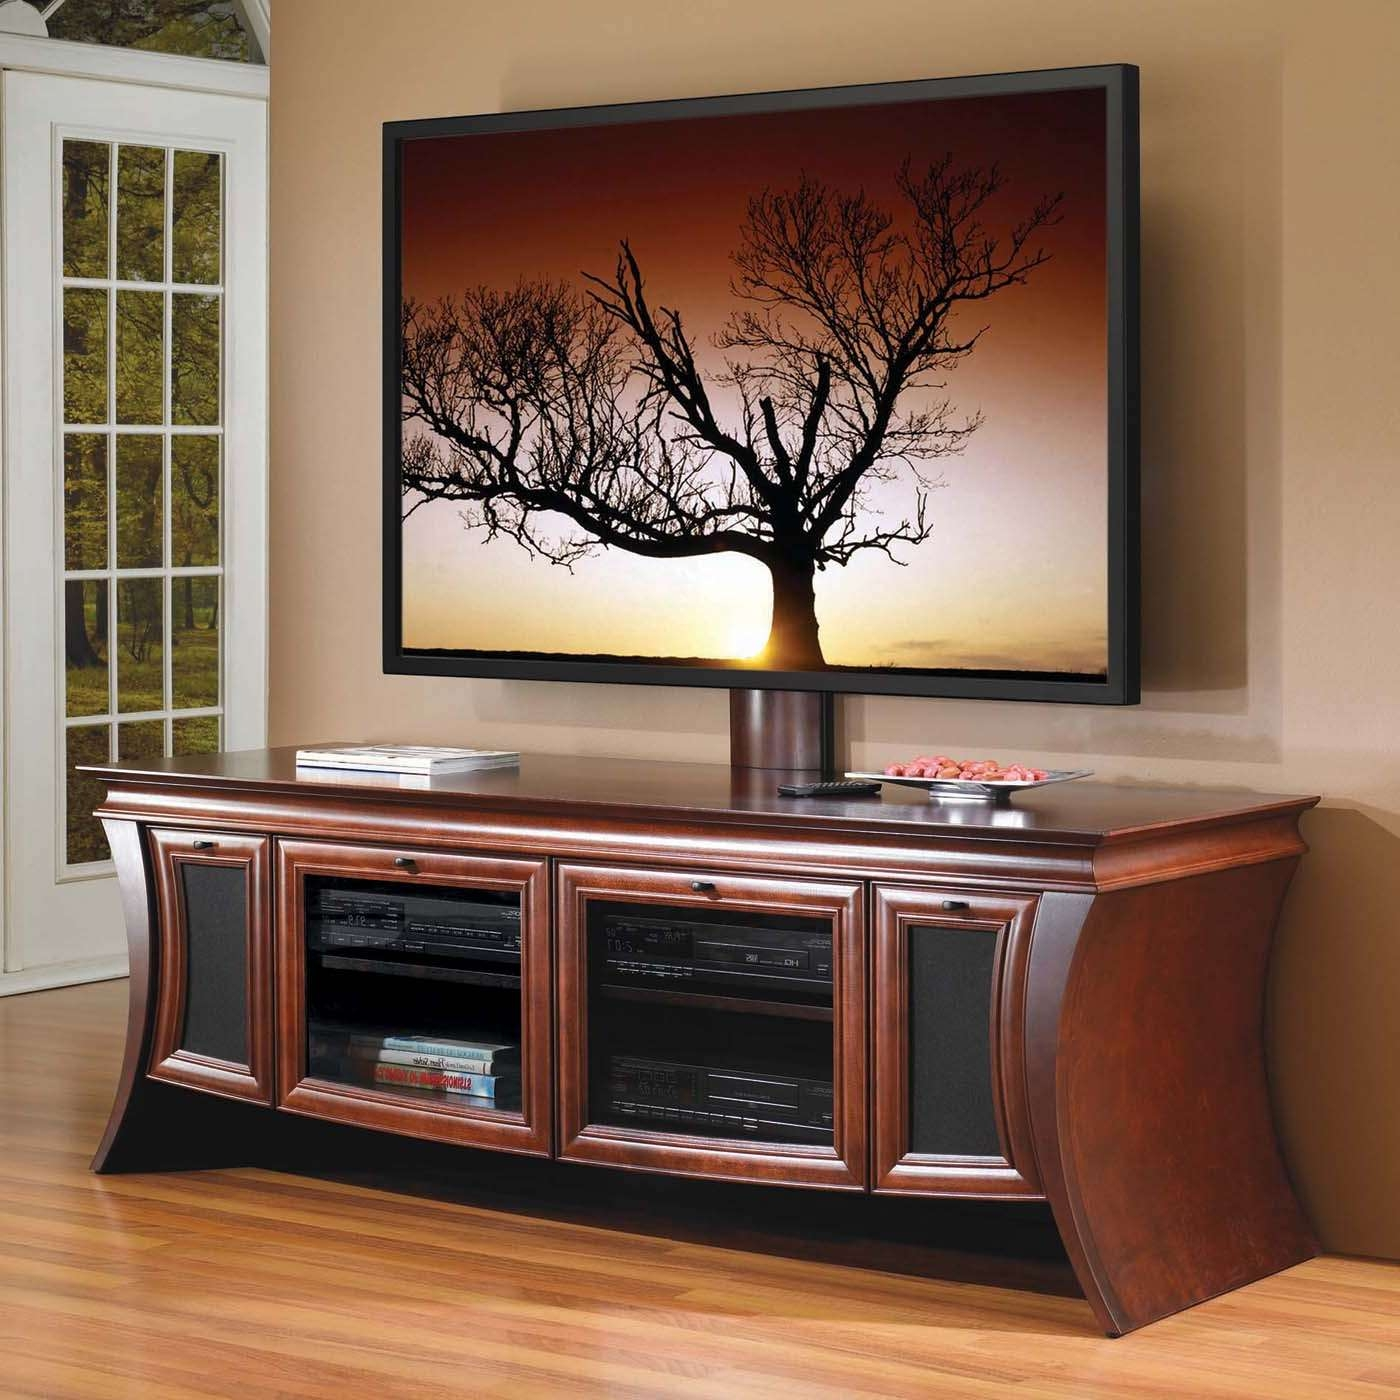 Brown Wooden Flat Screen Tv Stand Console Media Cabinet With Mount With Regard To Wooden Tv Stands With Wheels (View 2 of 15)